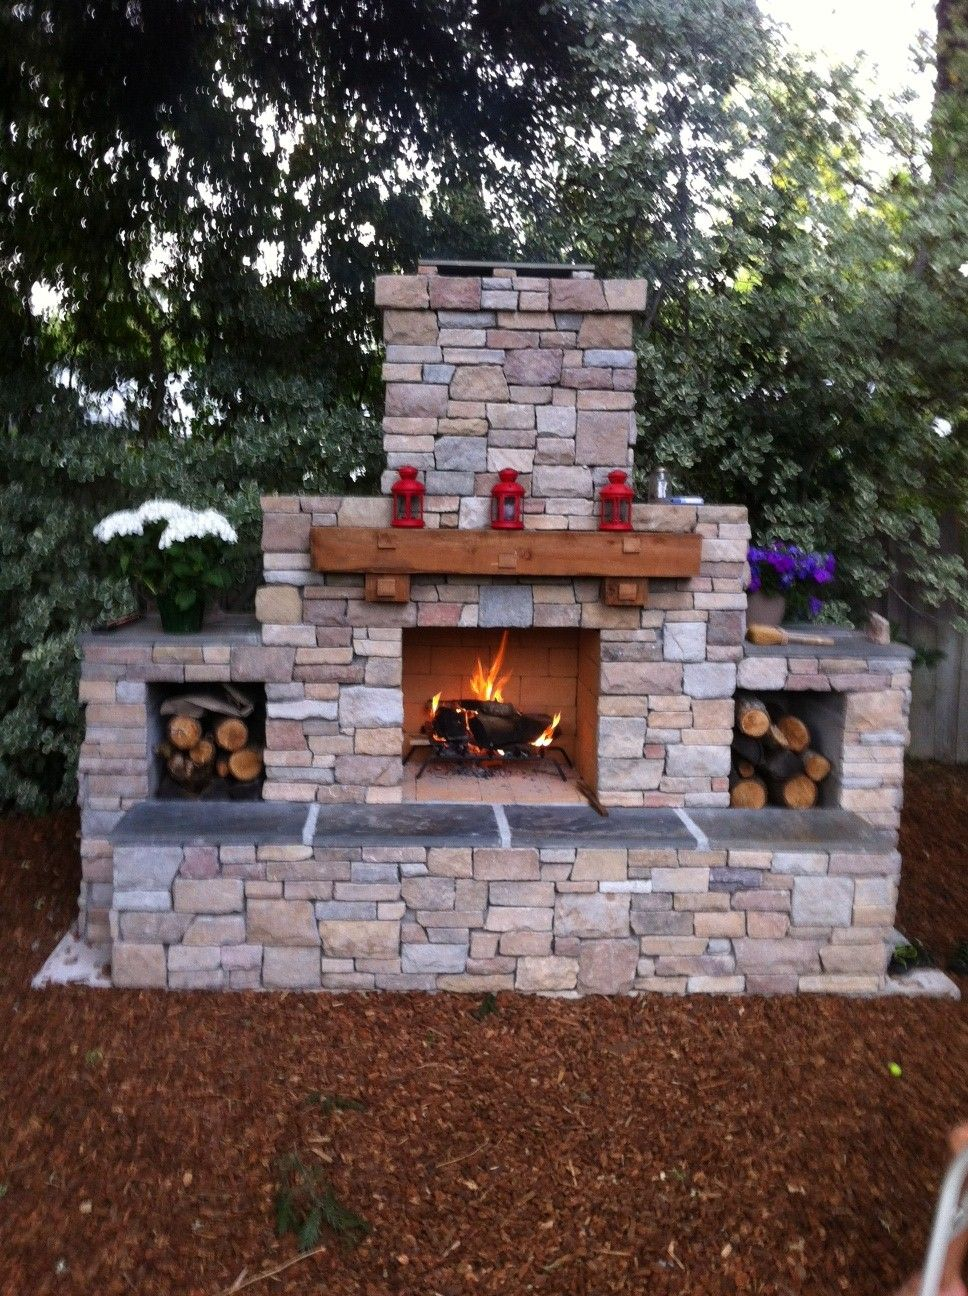 Pin By Terry Ball On The Great Outdoors Outdoor Fireplace Plans Diy Outdoor Fireplace Outdoor Fireplace Designs